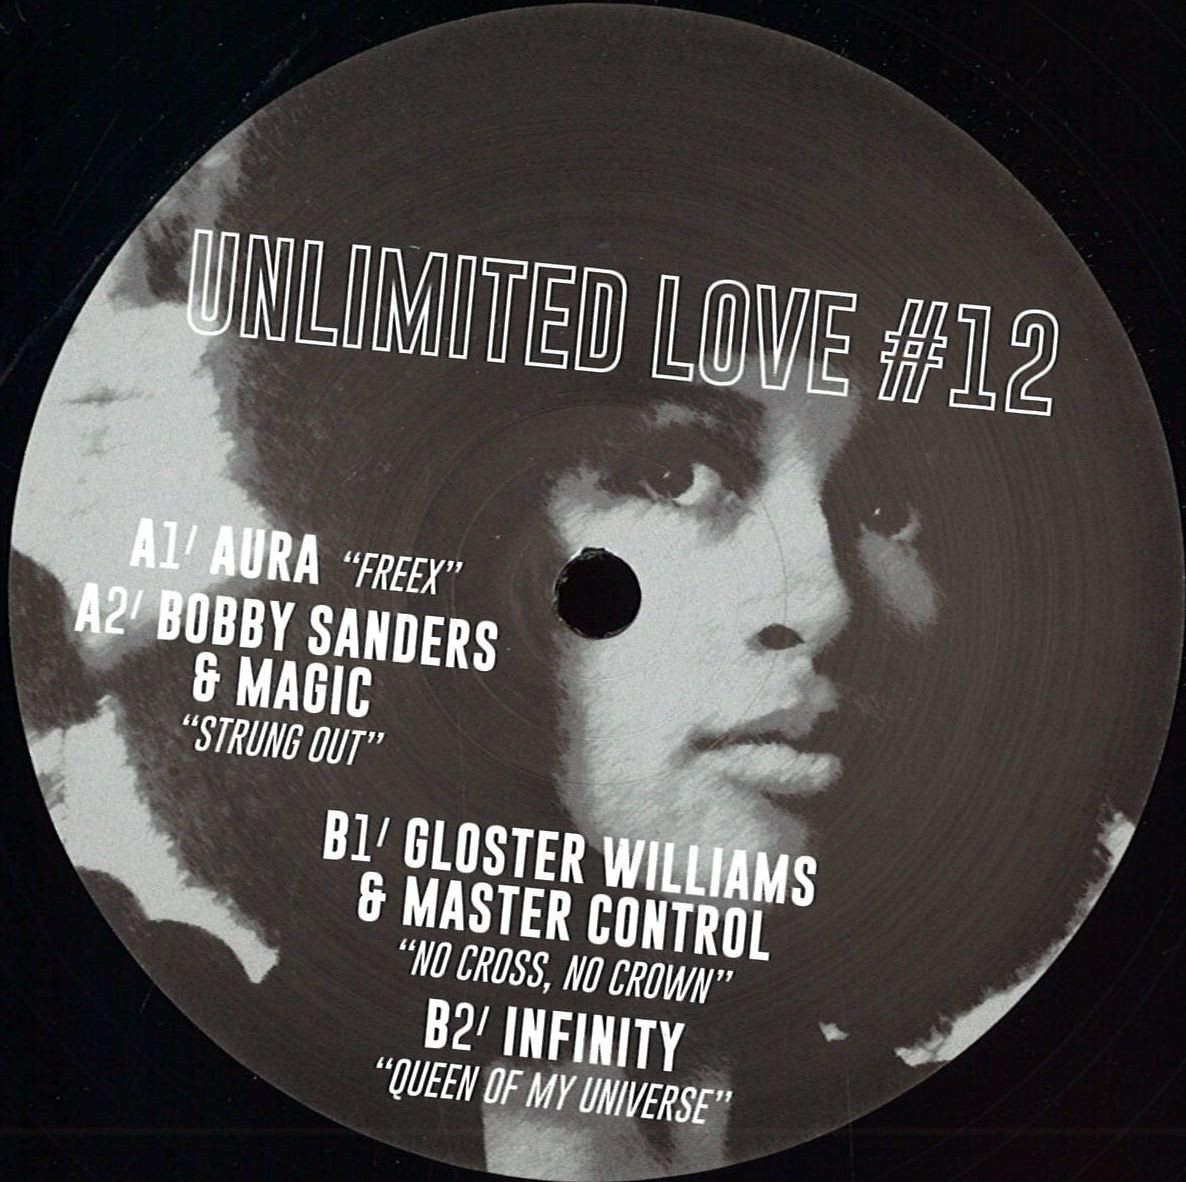 Unlimited Love 12